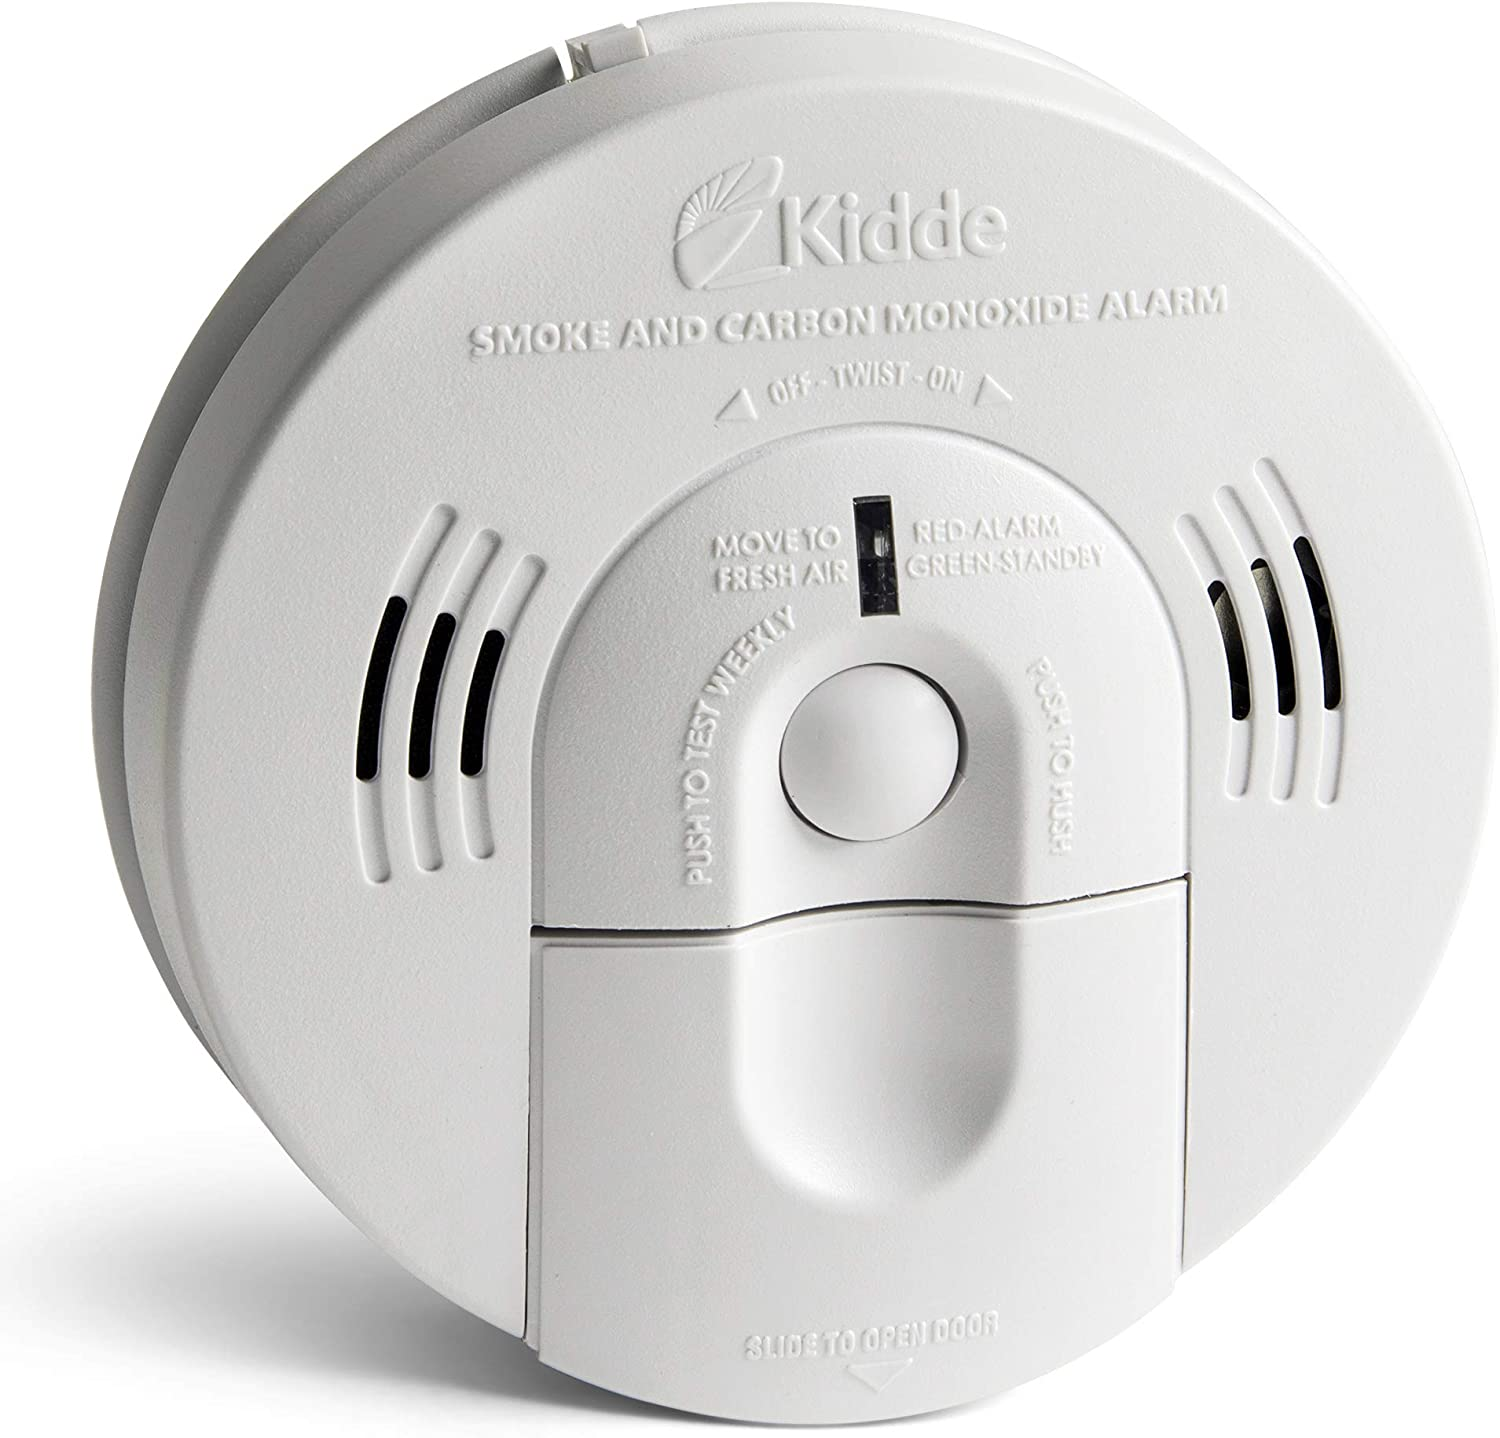 Kidde Smoke And Carbon Monoxide Detector Alarm With Voice Warning Hardwired W Battery Backup Interconnectable Model Kn Cosm Iba Amazon Com